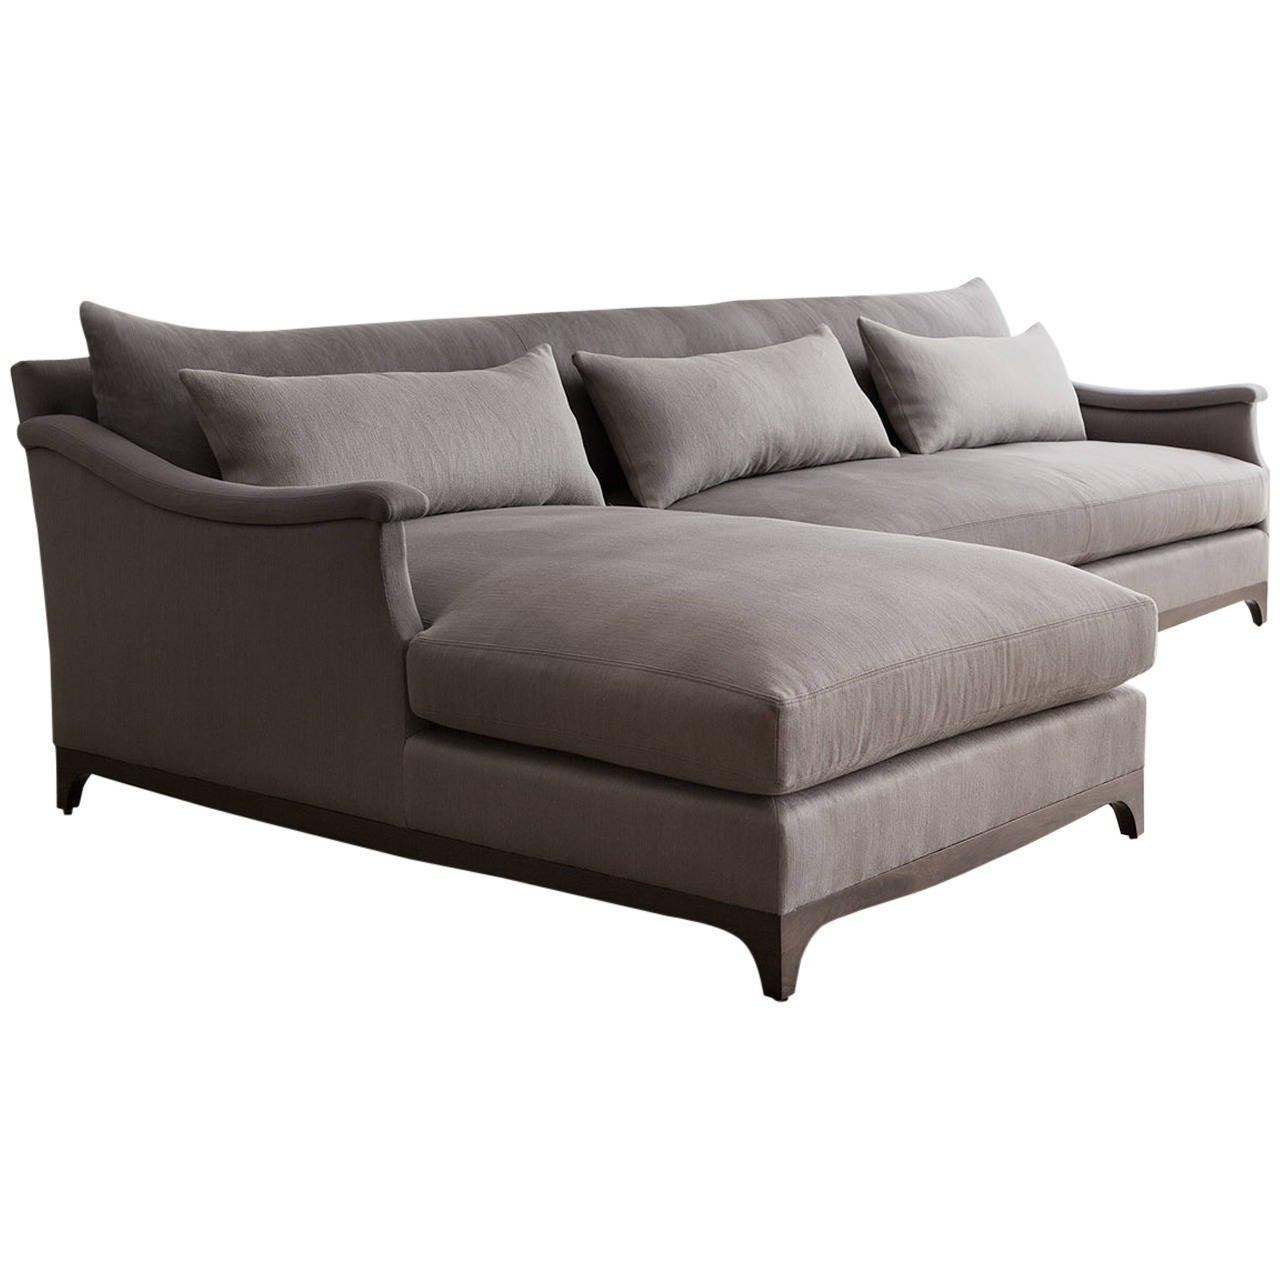 Chaise sofas for sale 28 images sectional sofa for for Chaise for sale